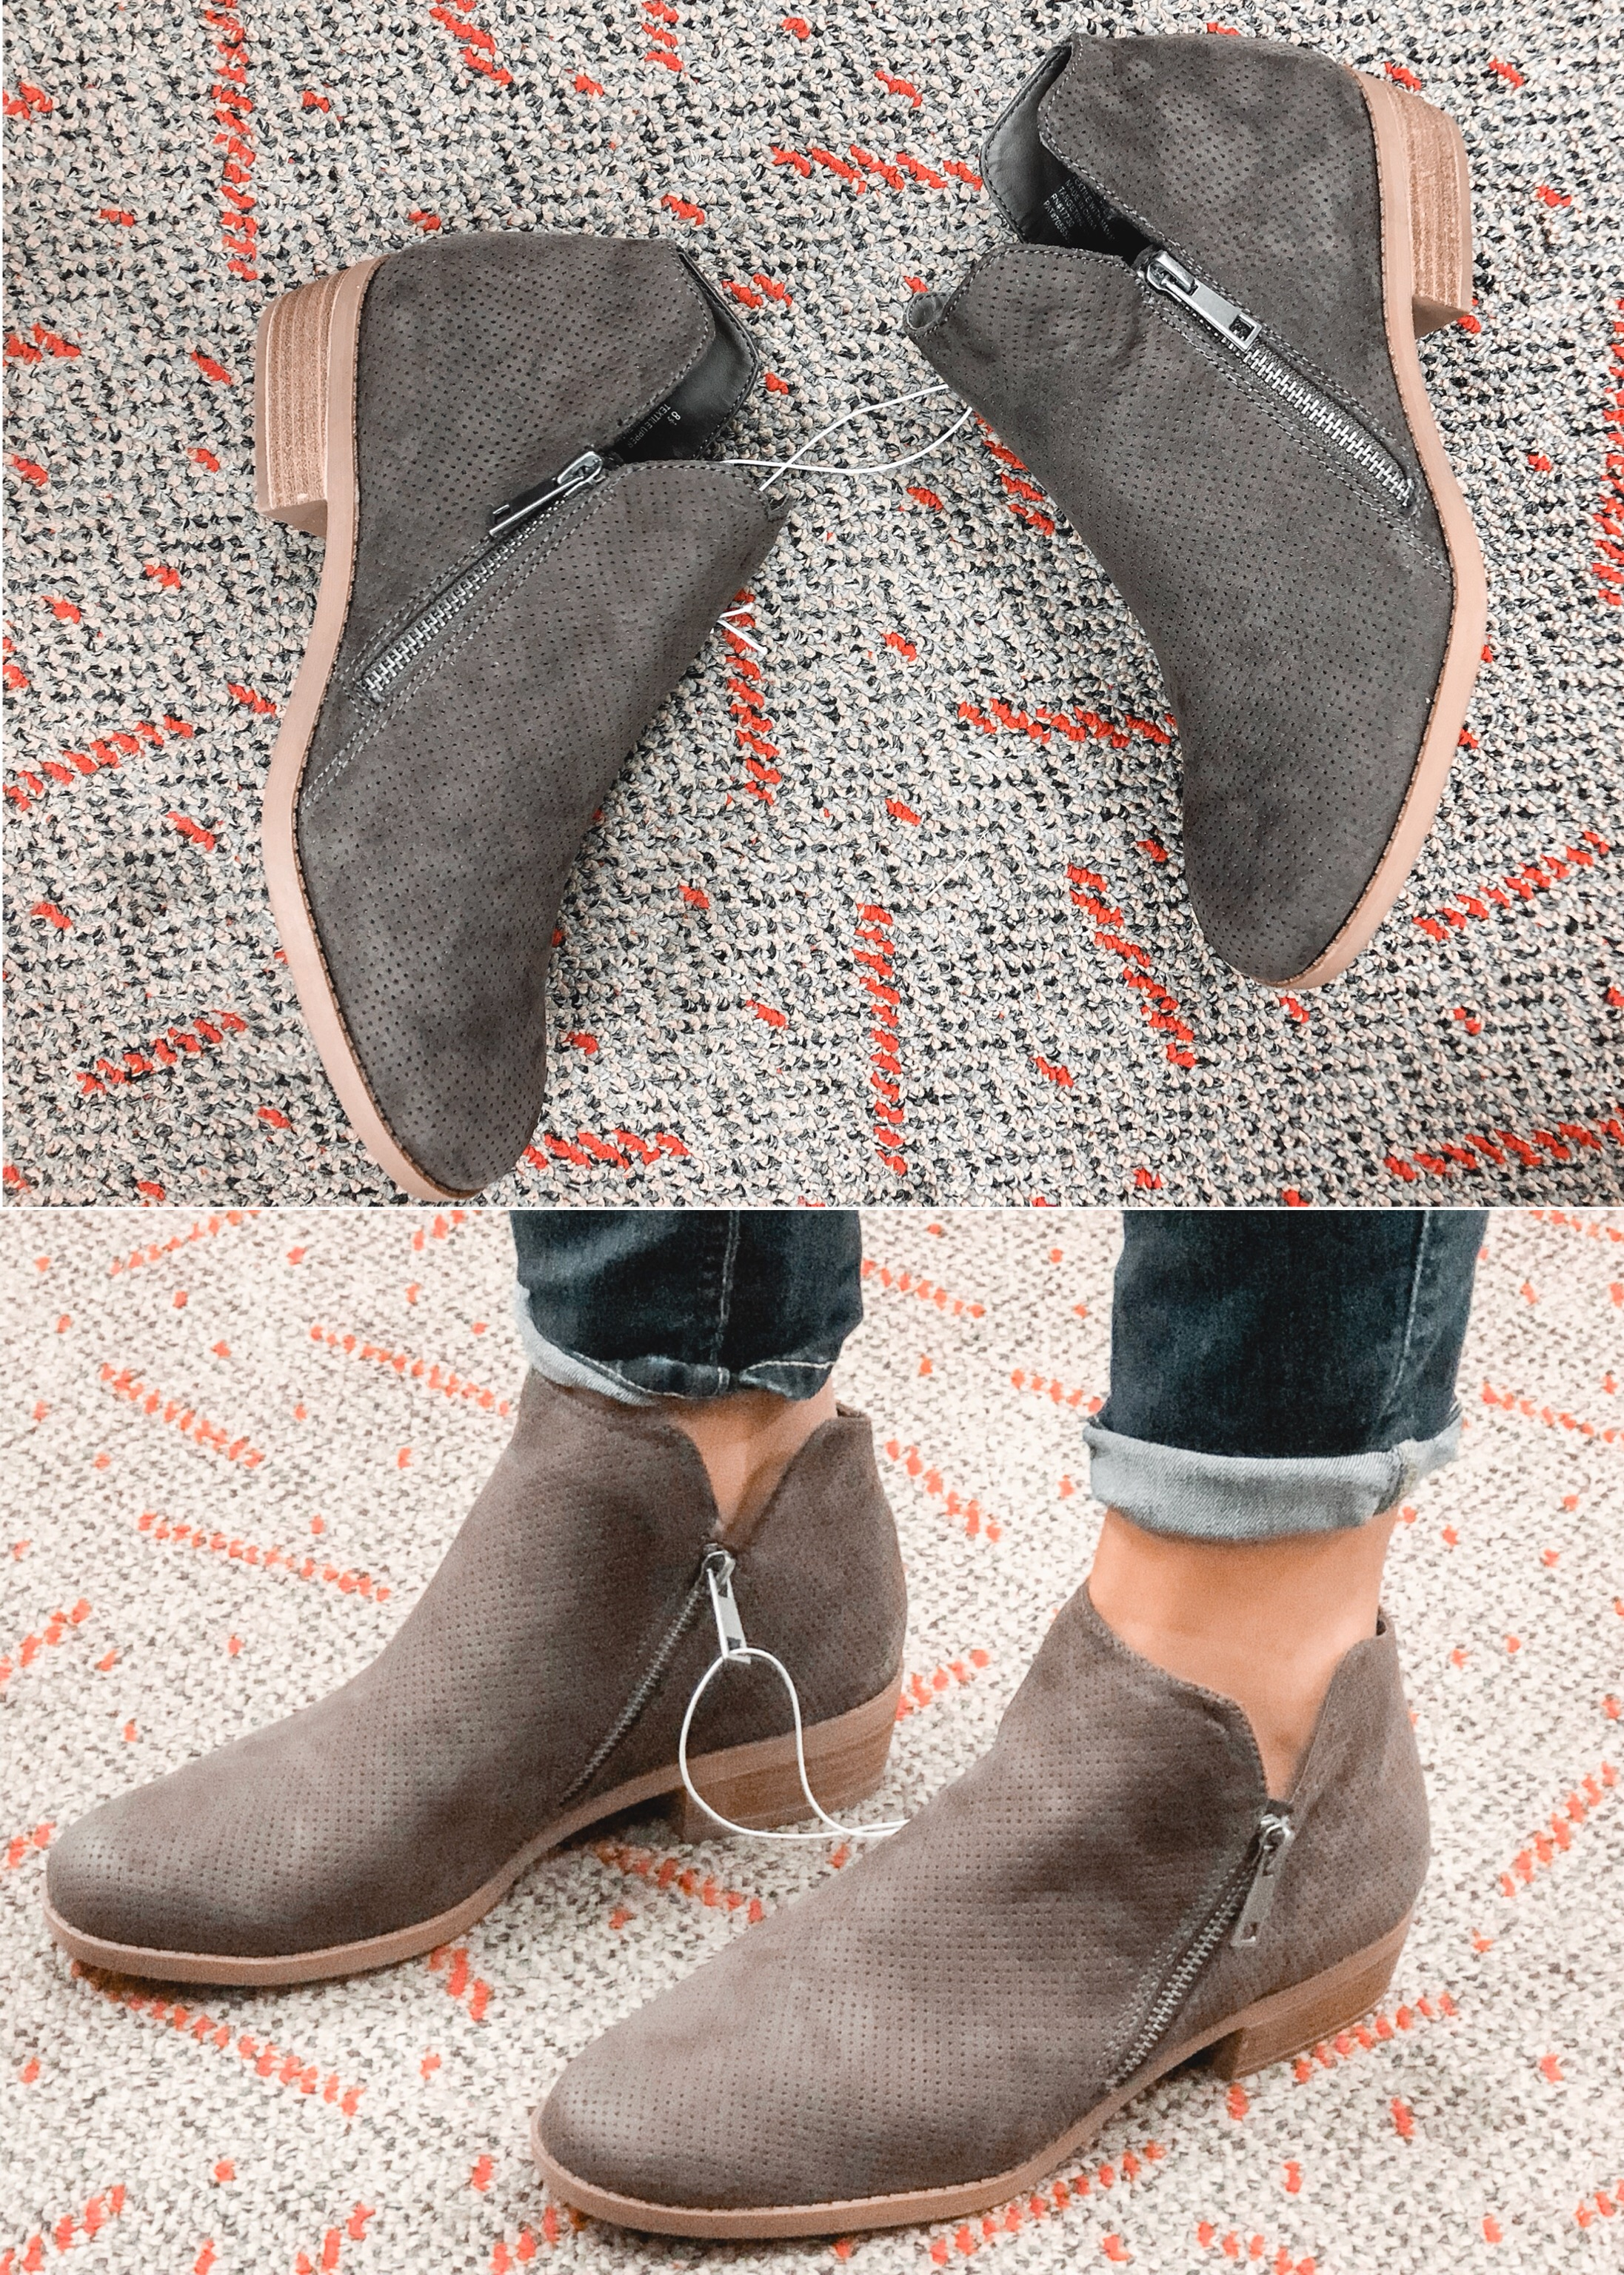 universal thread dylan bootie - | 9 pairs of target fall shoes reviewed! bylaurenm.com